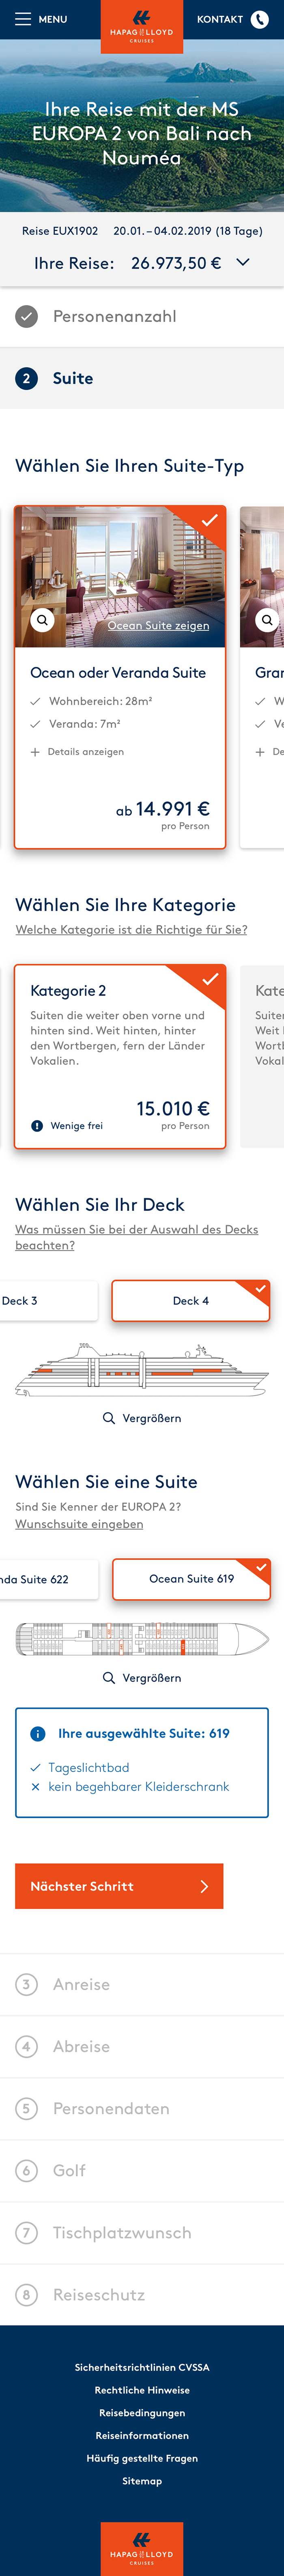 hapag-lloyd-cruises_booking-platform_suite-mobile